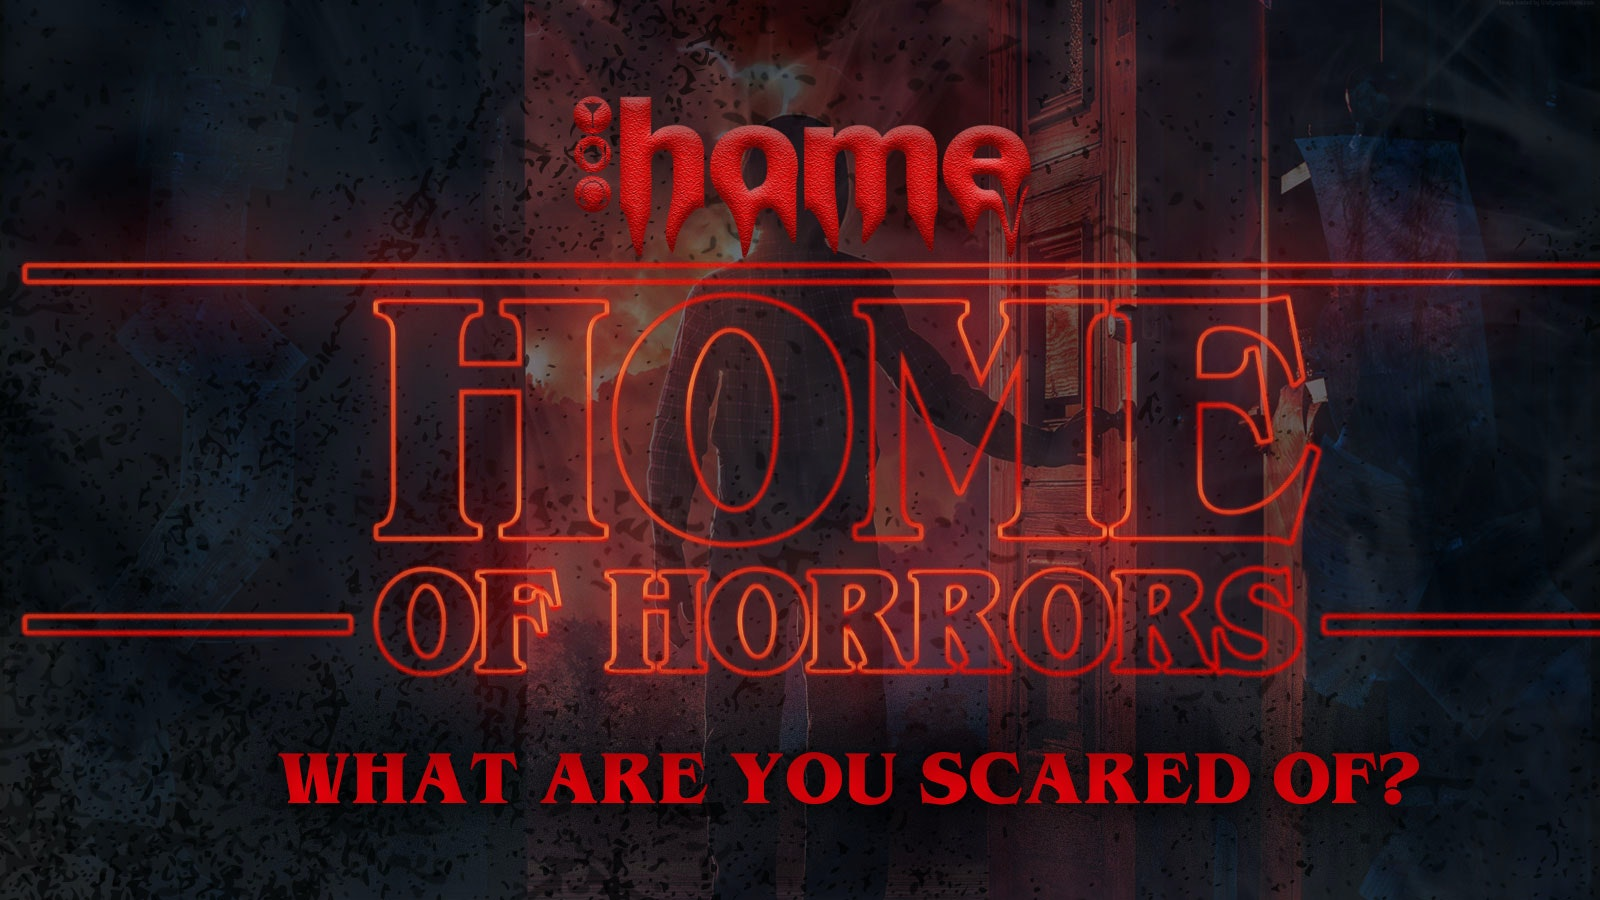 Home Lincoln Halloween 2019 | Home Of Horrors Saturday